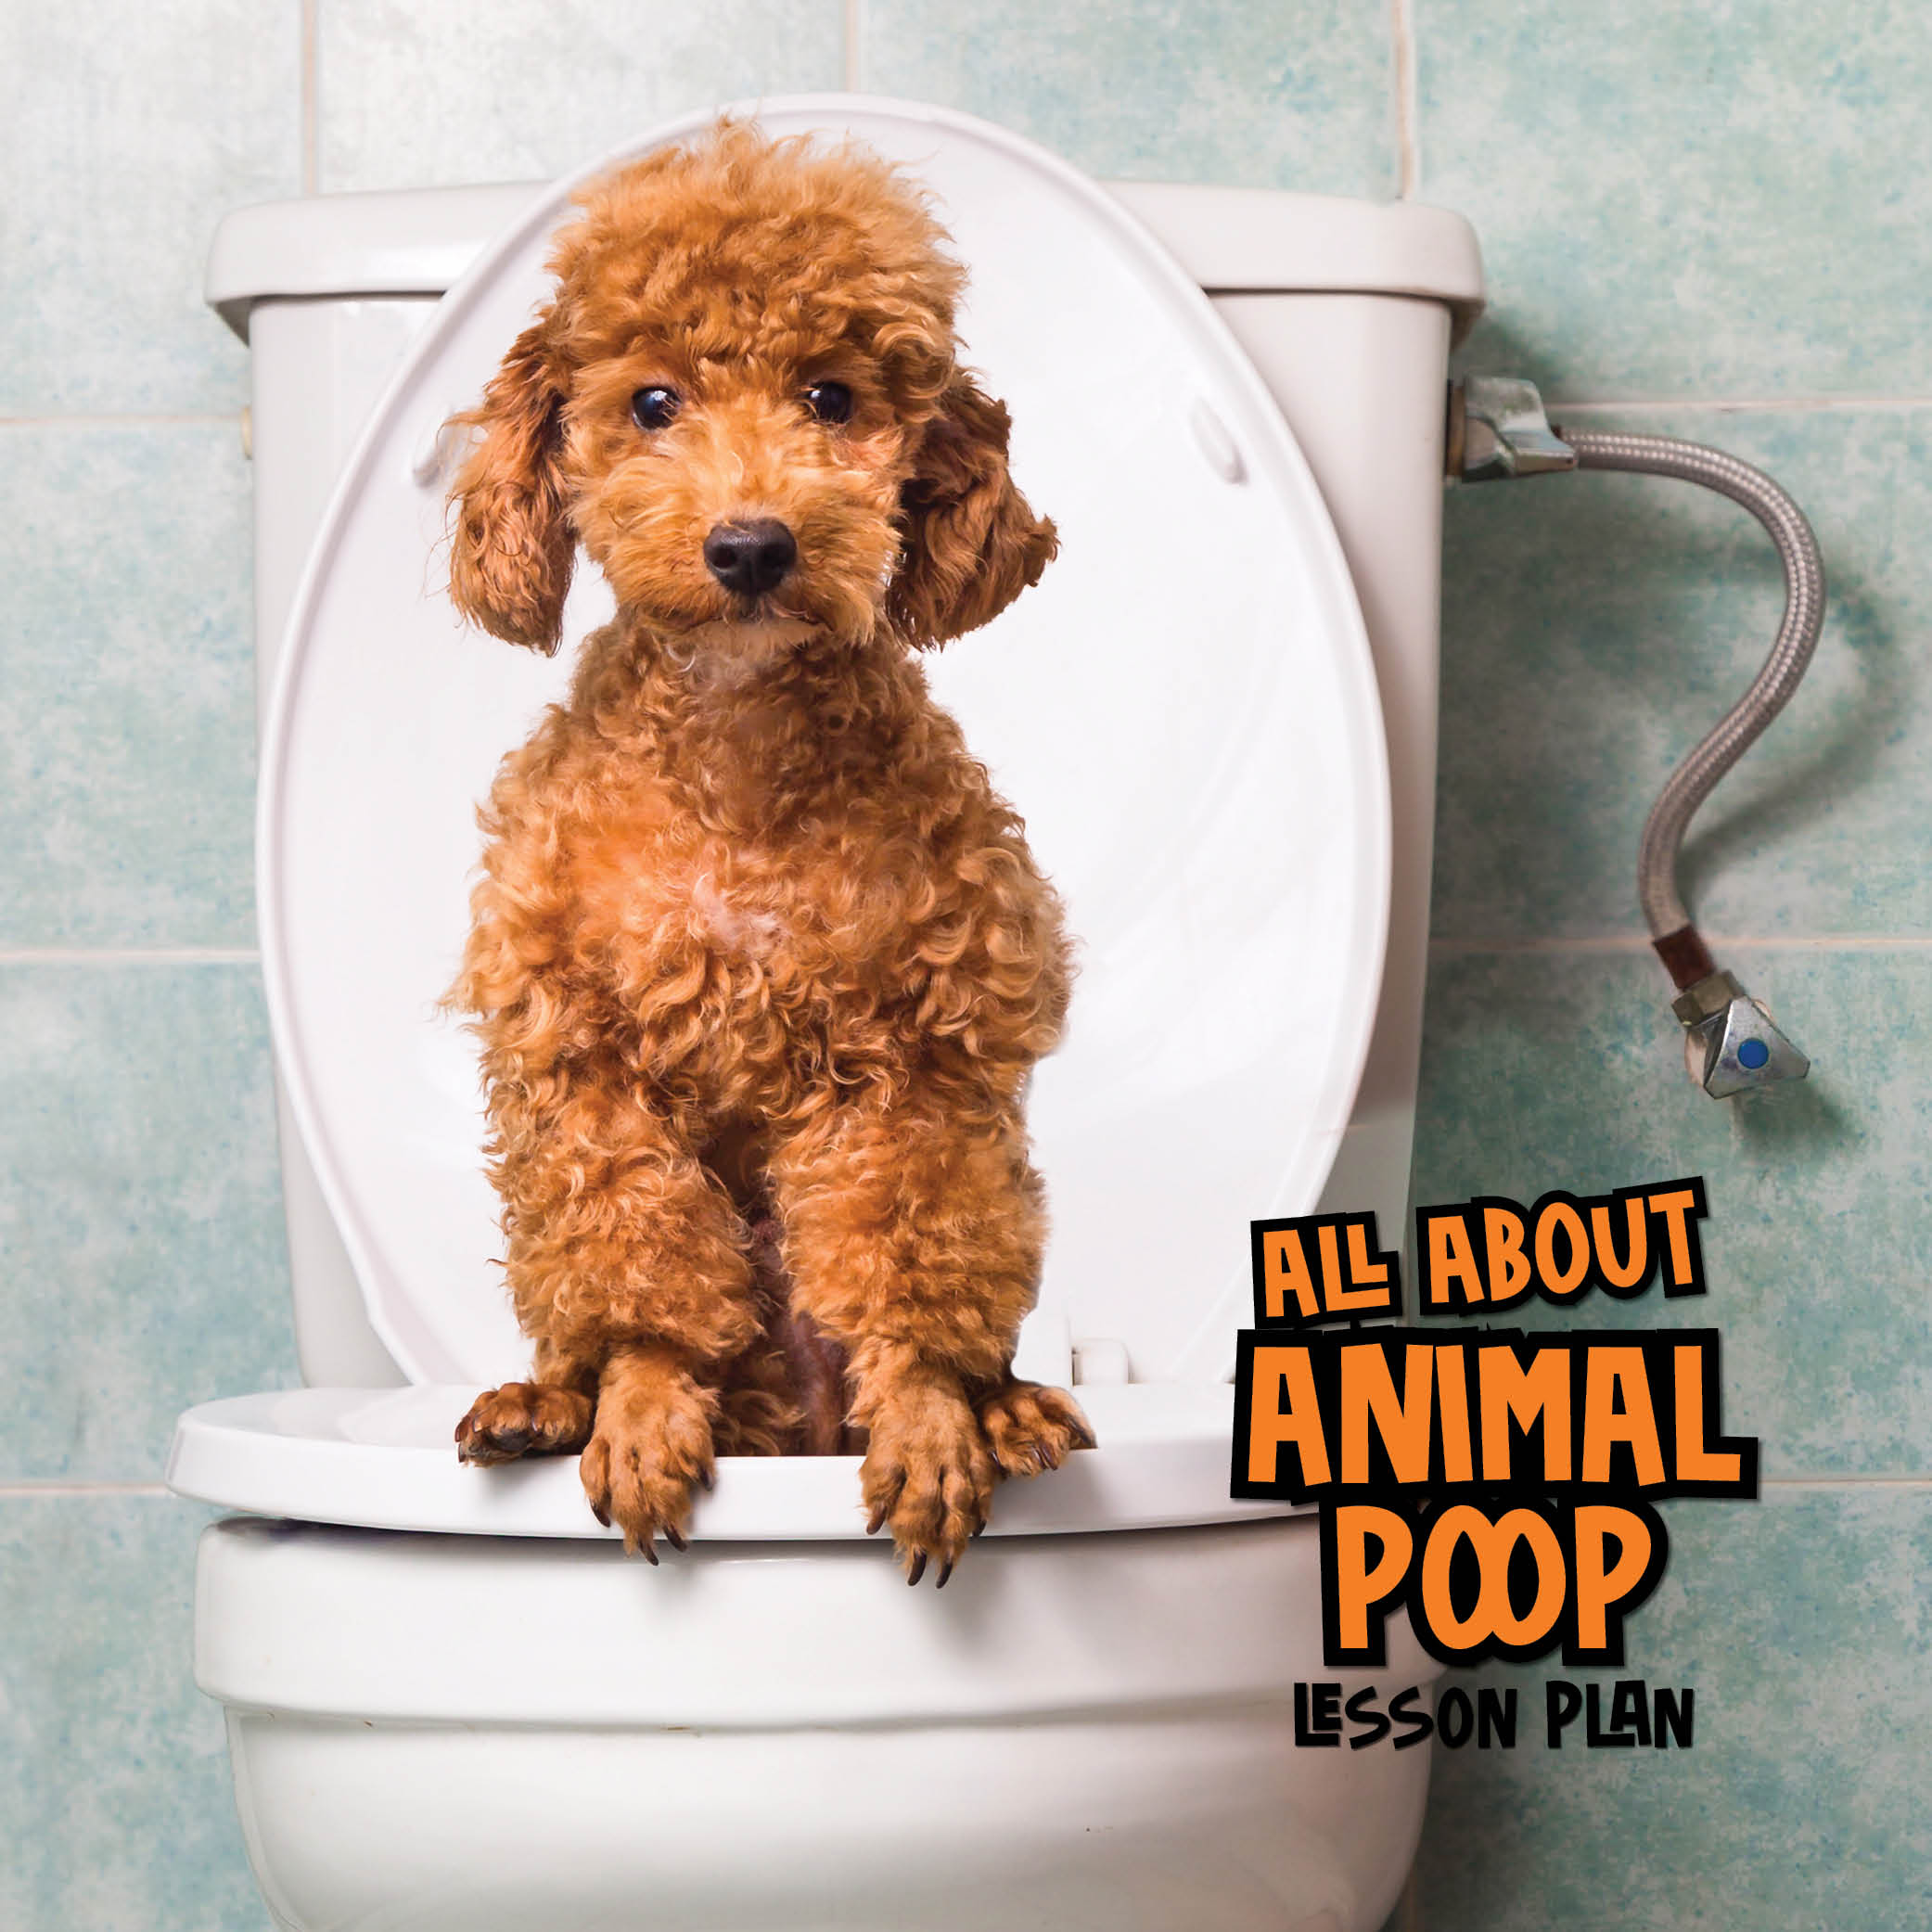 all about animal poop lesson plan brown poodle sitting on toilet